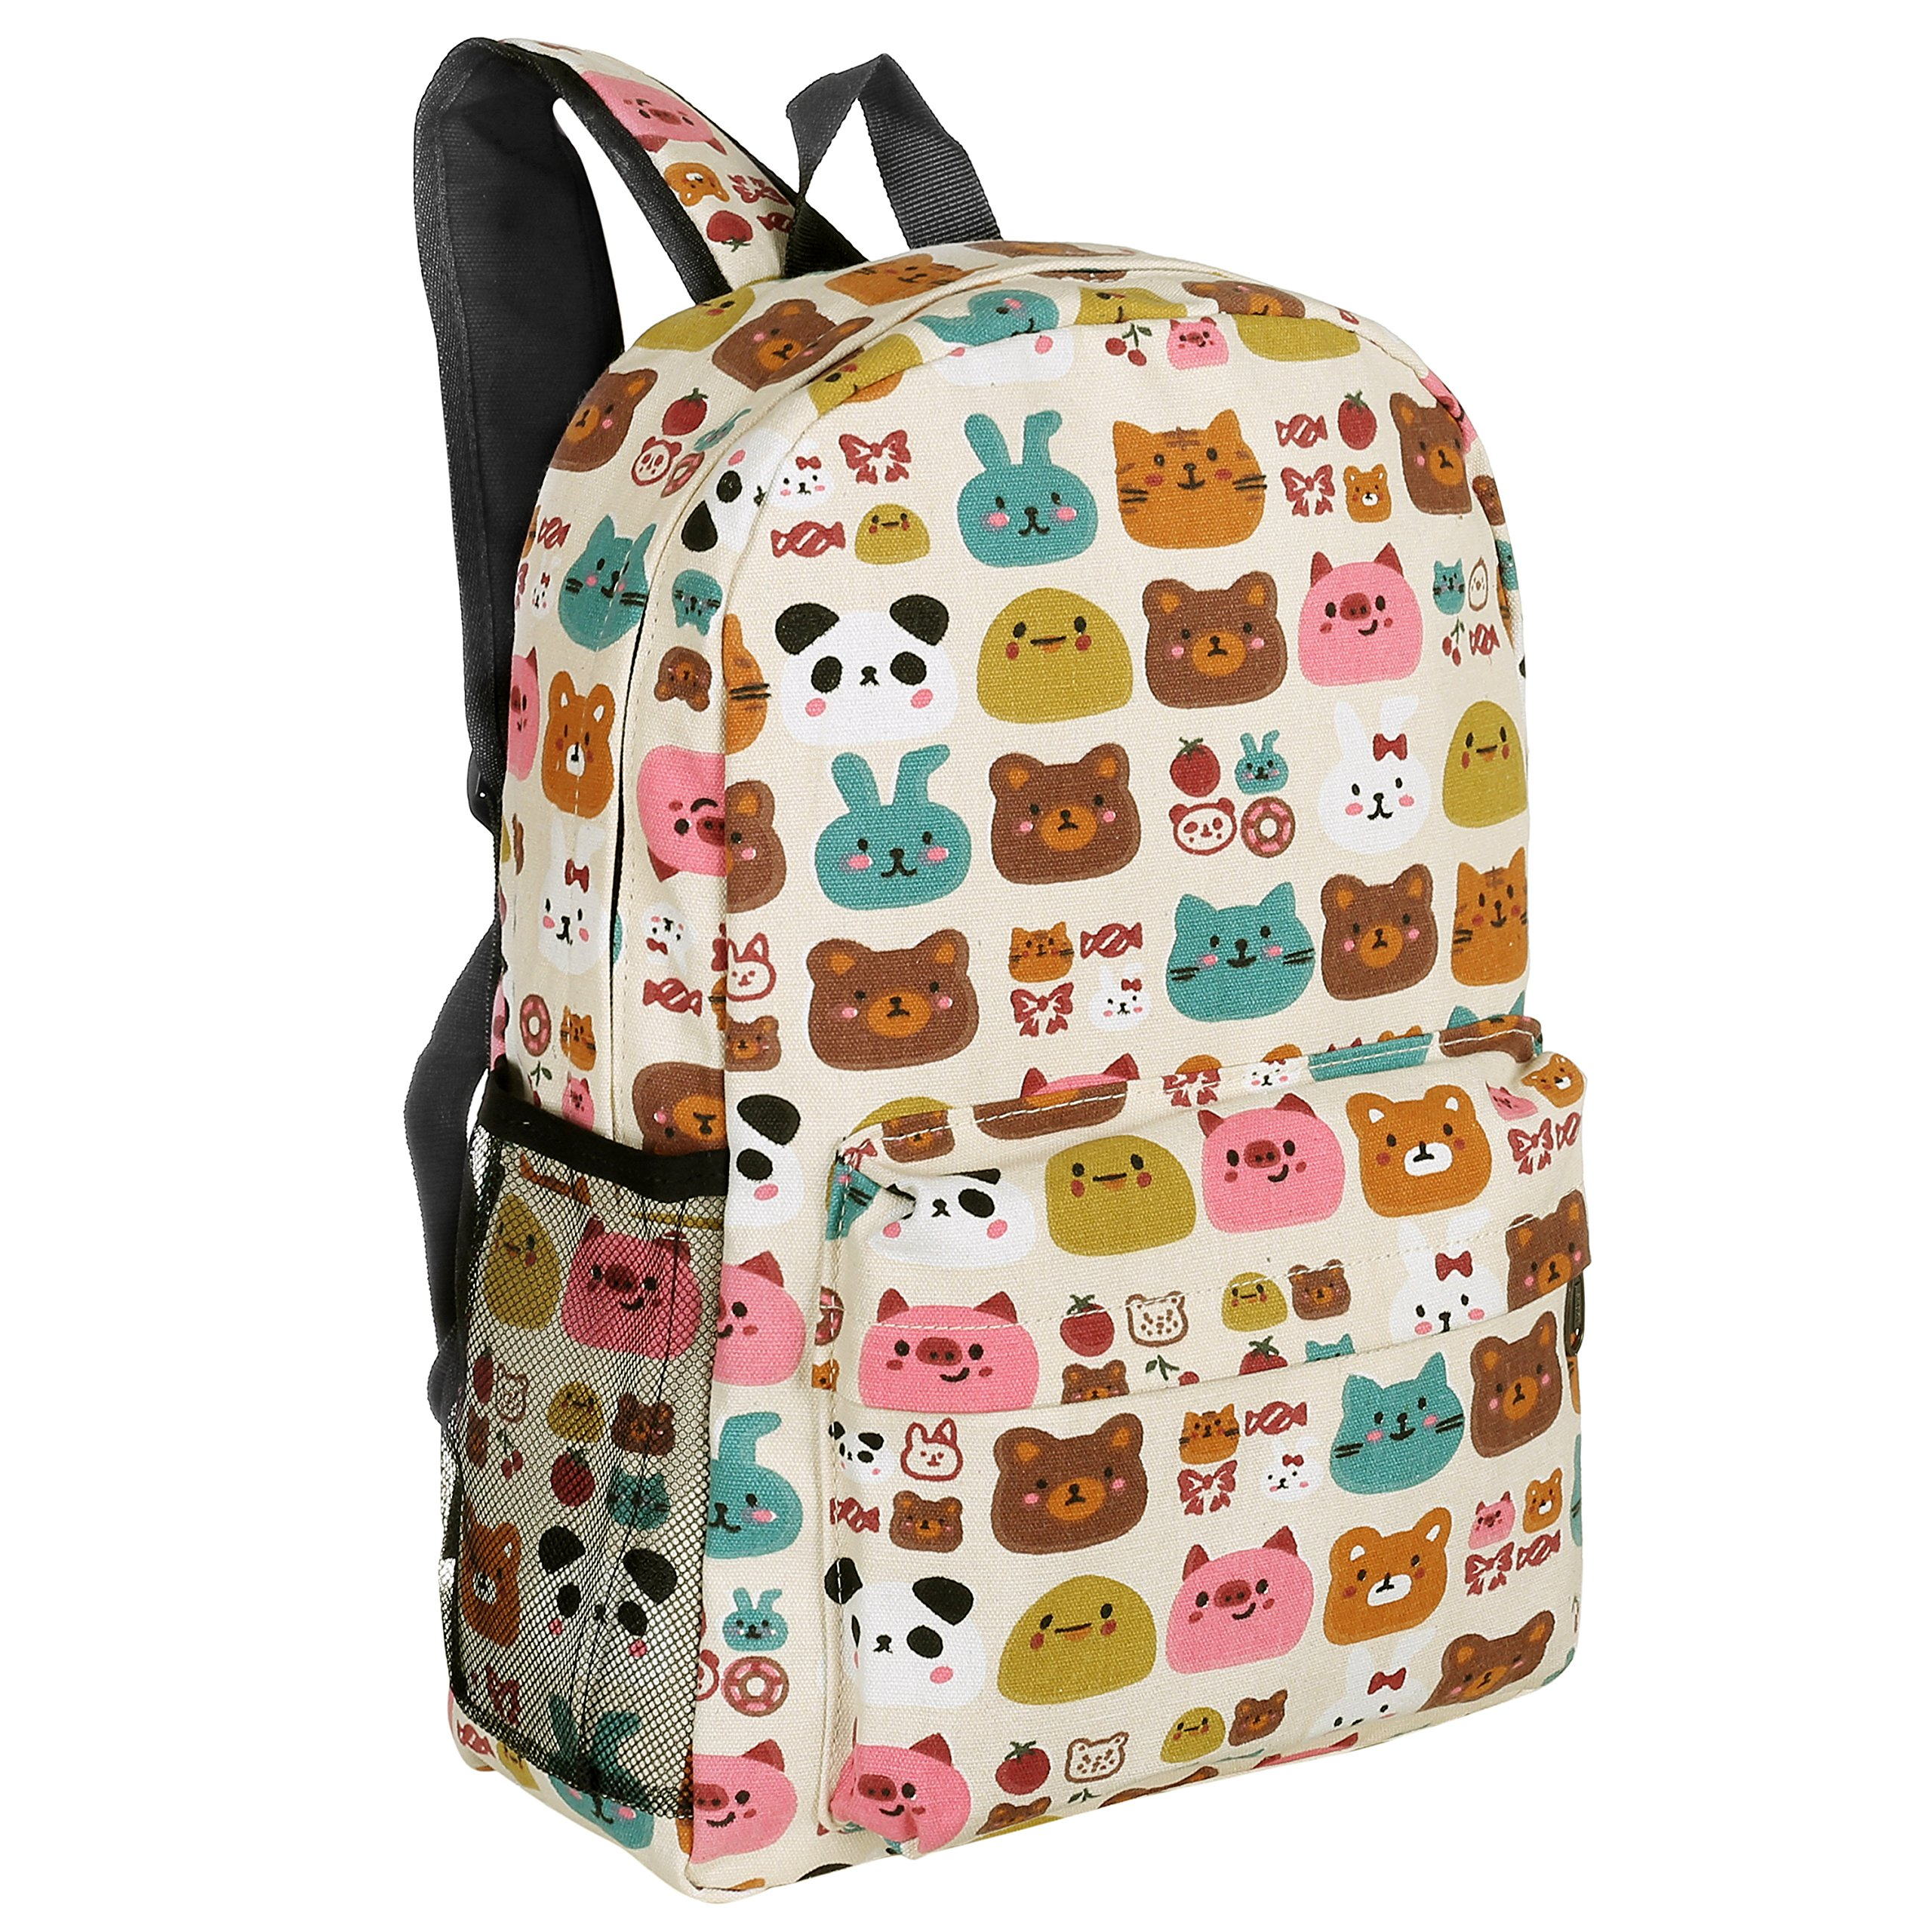 16-Inch Forest Animal Pattern Elementary Kids School Canvas Backpack - MGgear by MyGift (Image #1)